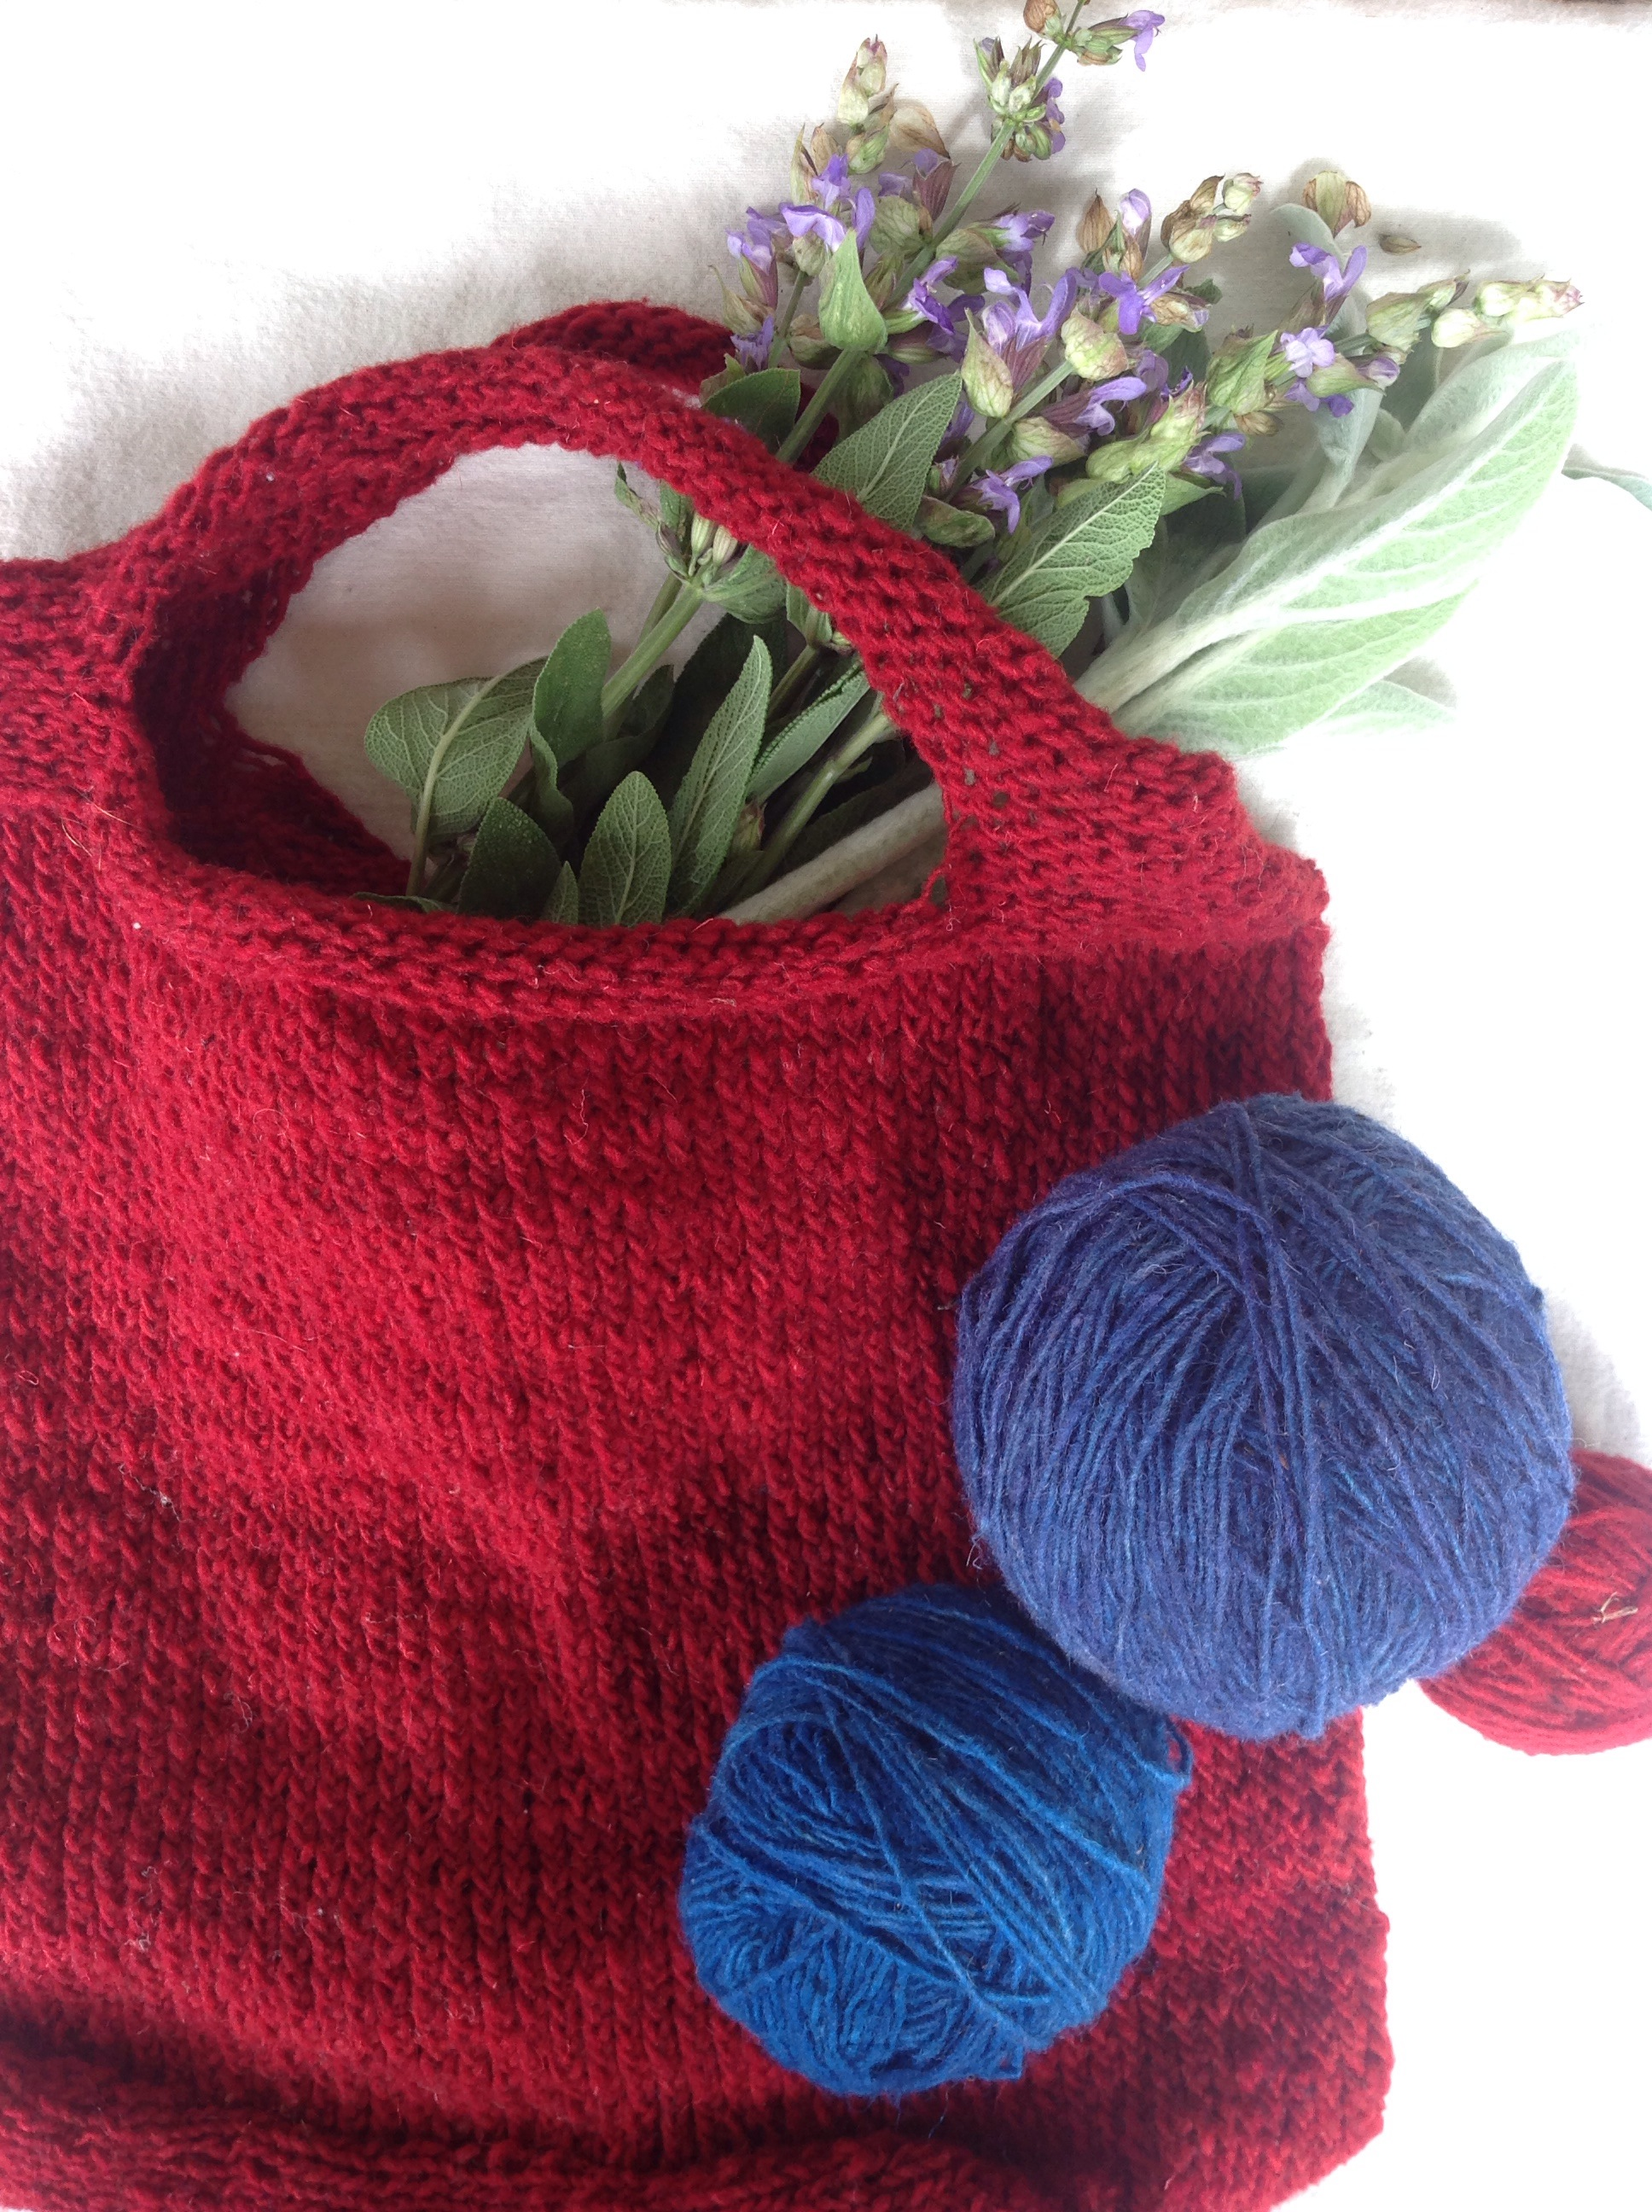 Knitting Worksheets : Ten knitting lessons i learned this year the hard way of